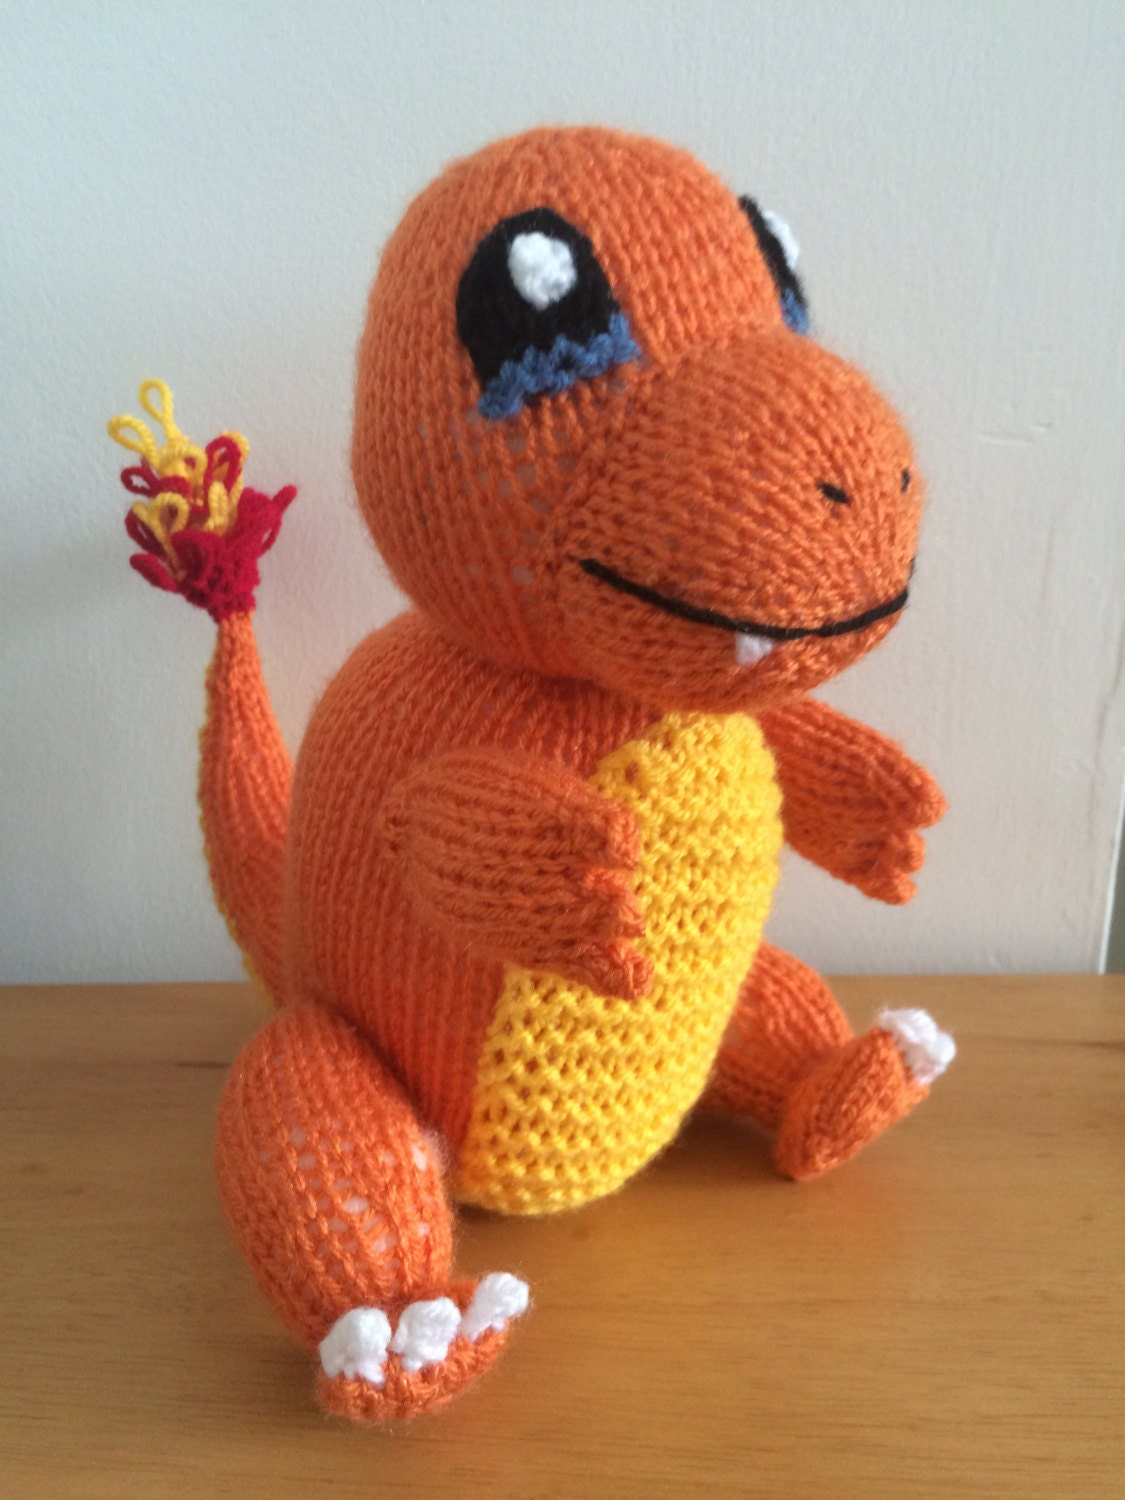 Knitting Patterns Plush Toys : Charmander pokemon knitting pattern toy knitted soft toy